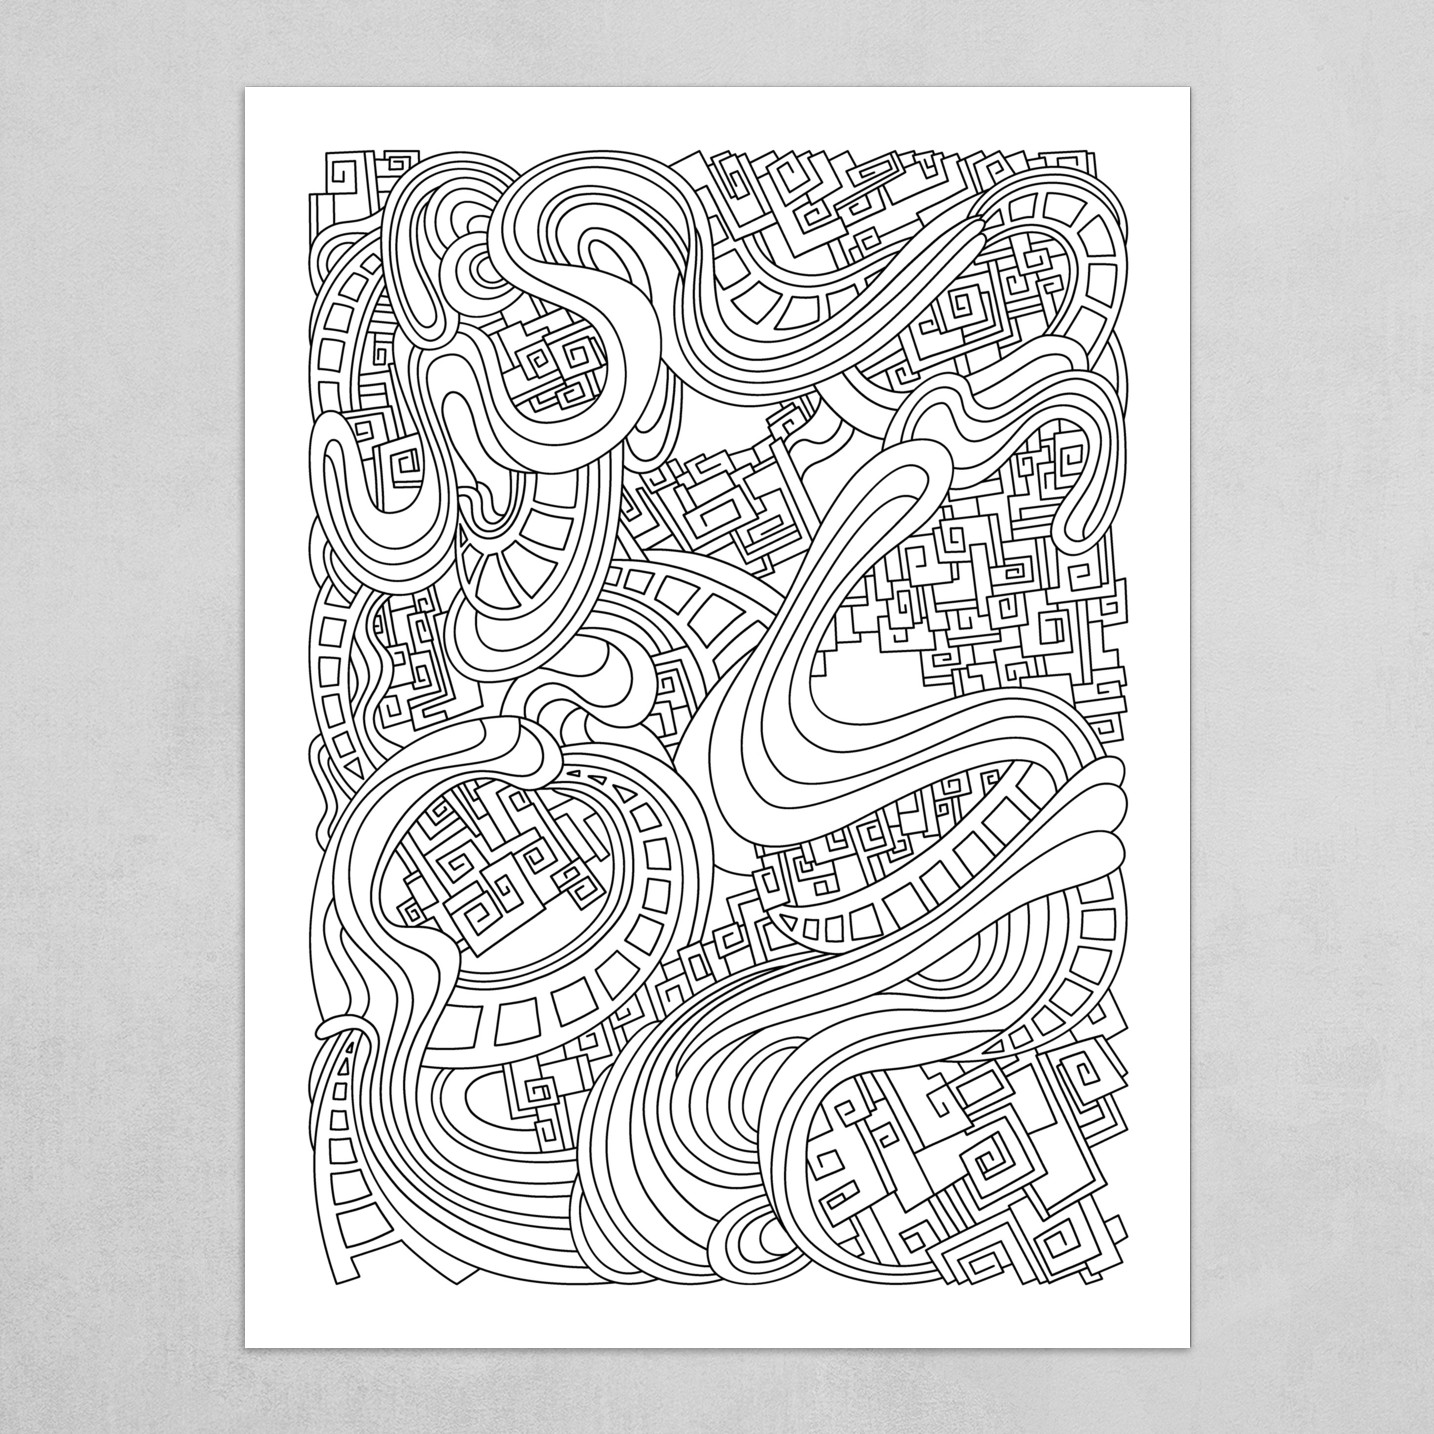 Wandering Abstract Line Art 45: Black & White